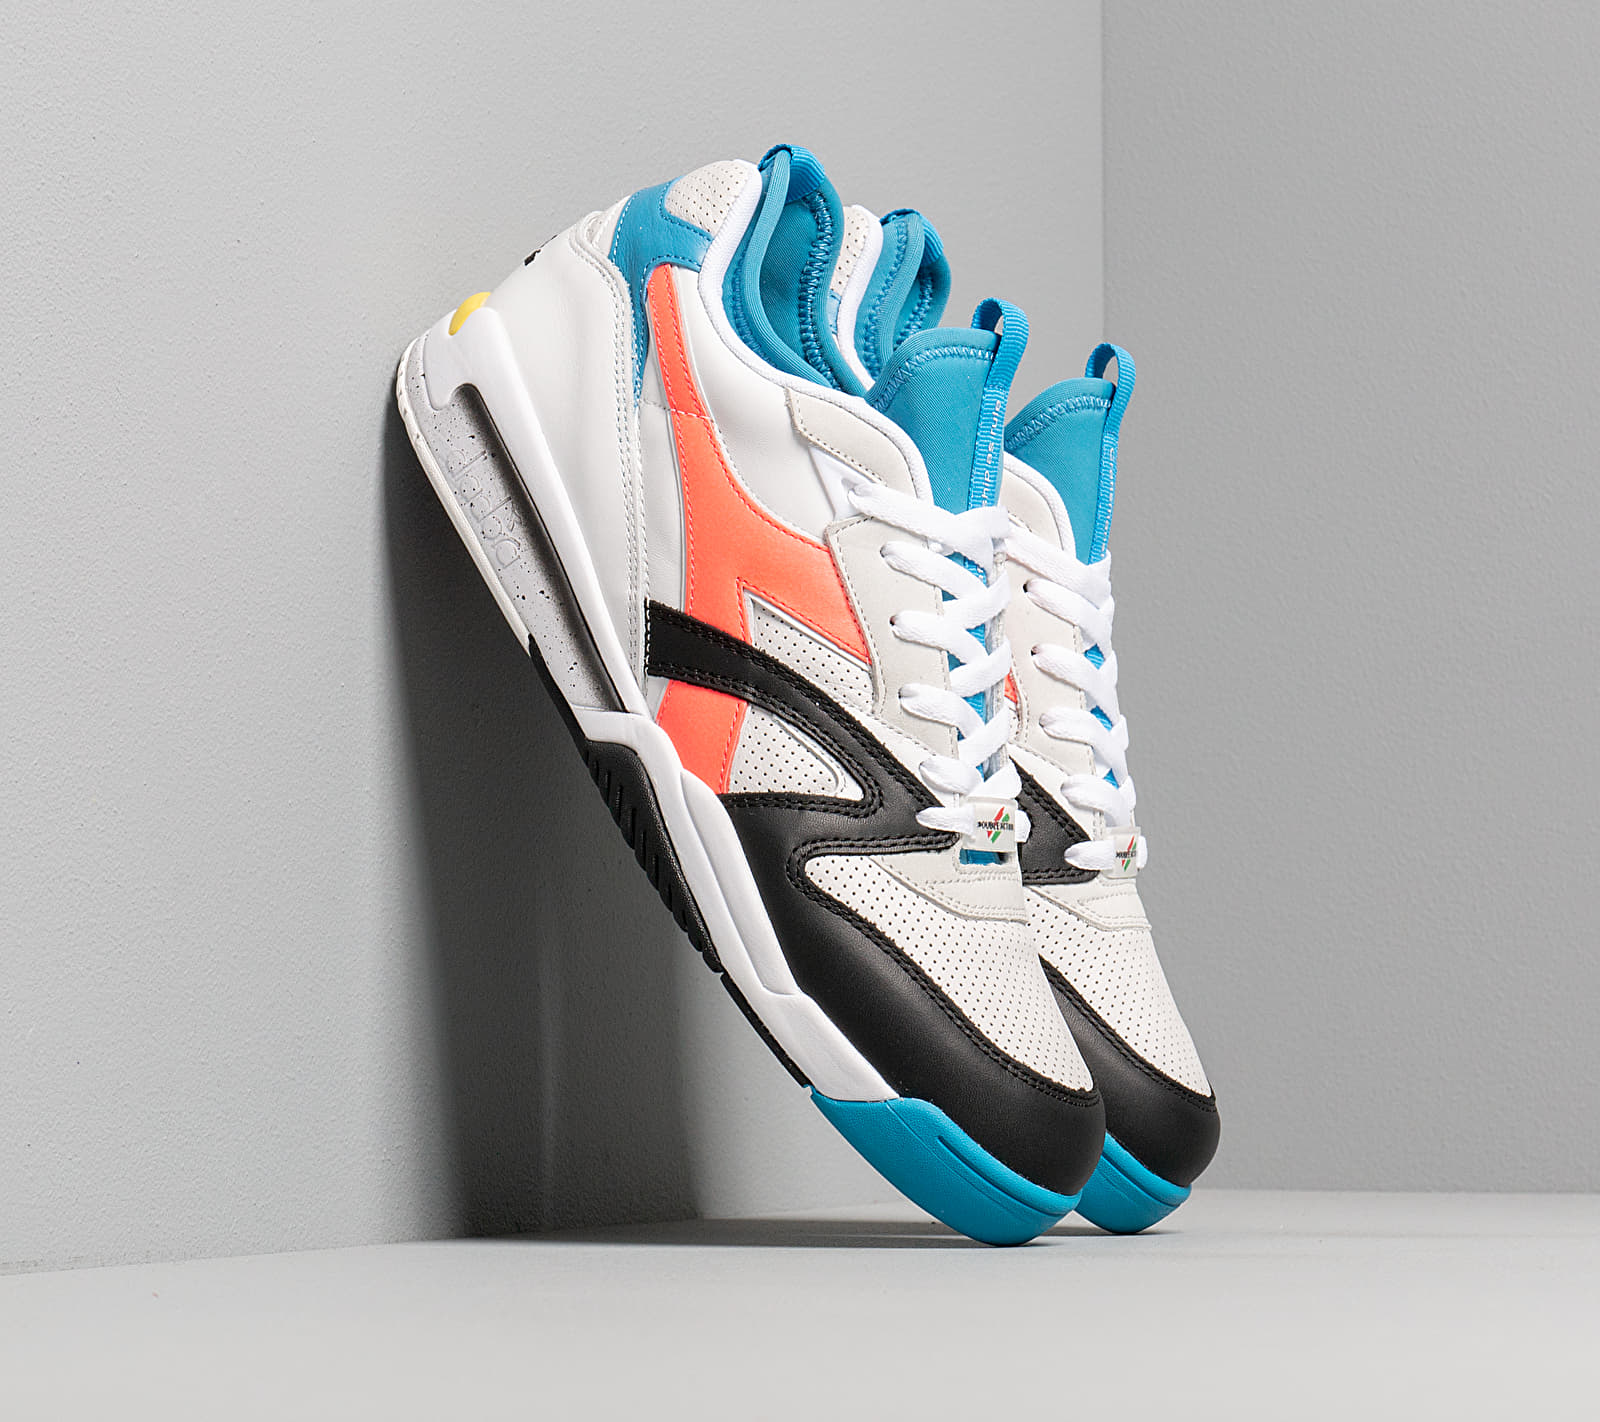 Diadora x Paura Duratech Elite White/...